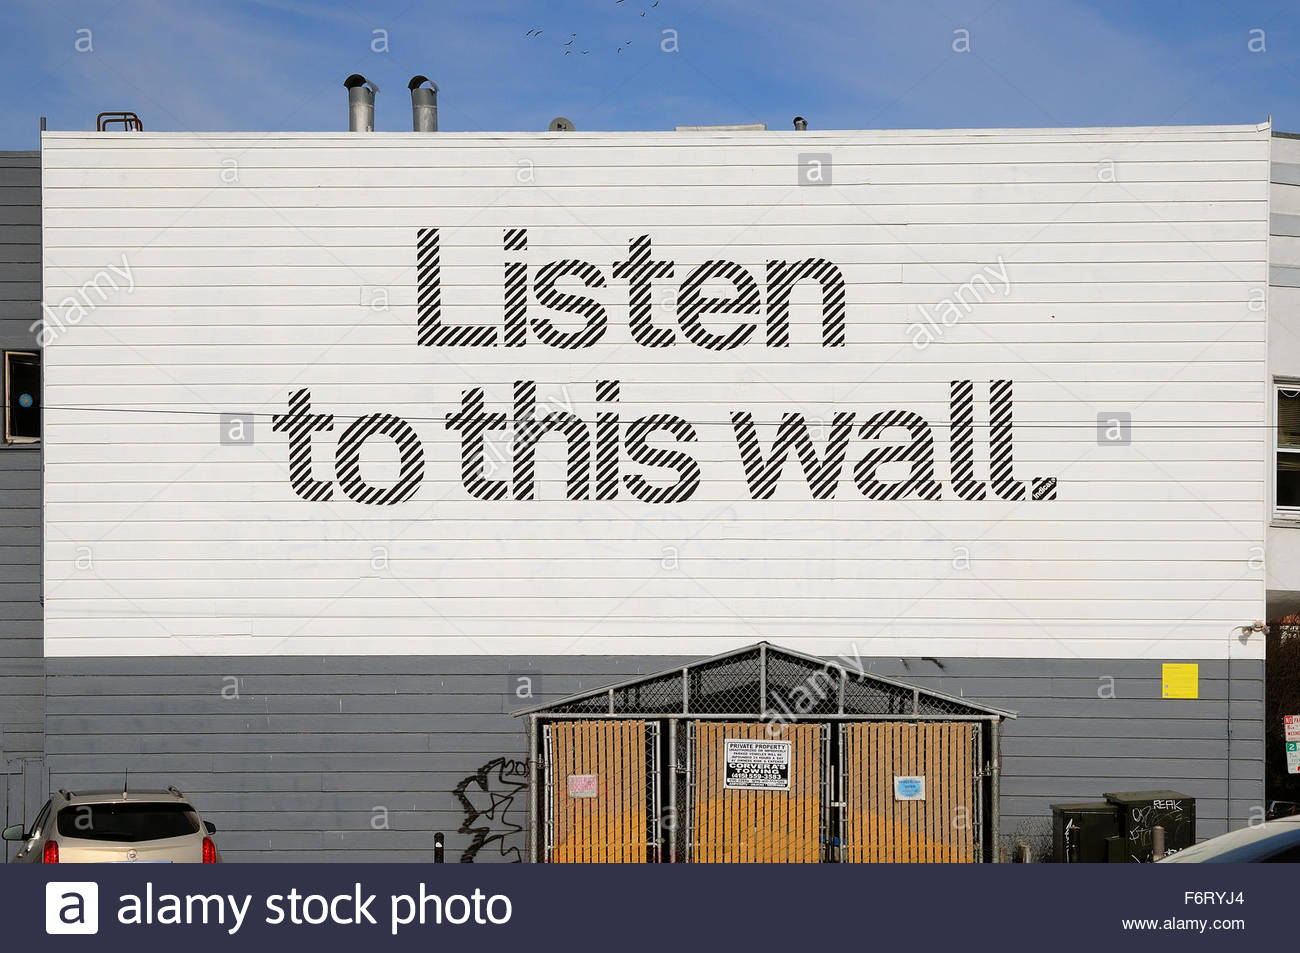 Listen to this wall. Graffiti message on a wall in Haight-Ashbury, San Francisco - Stock Image